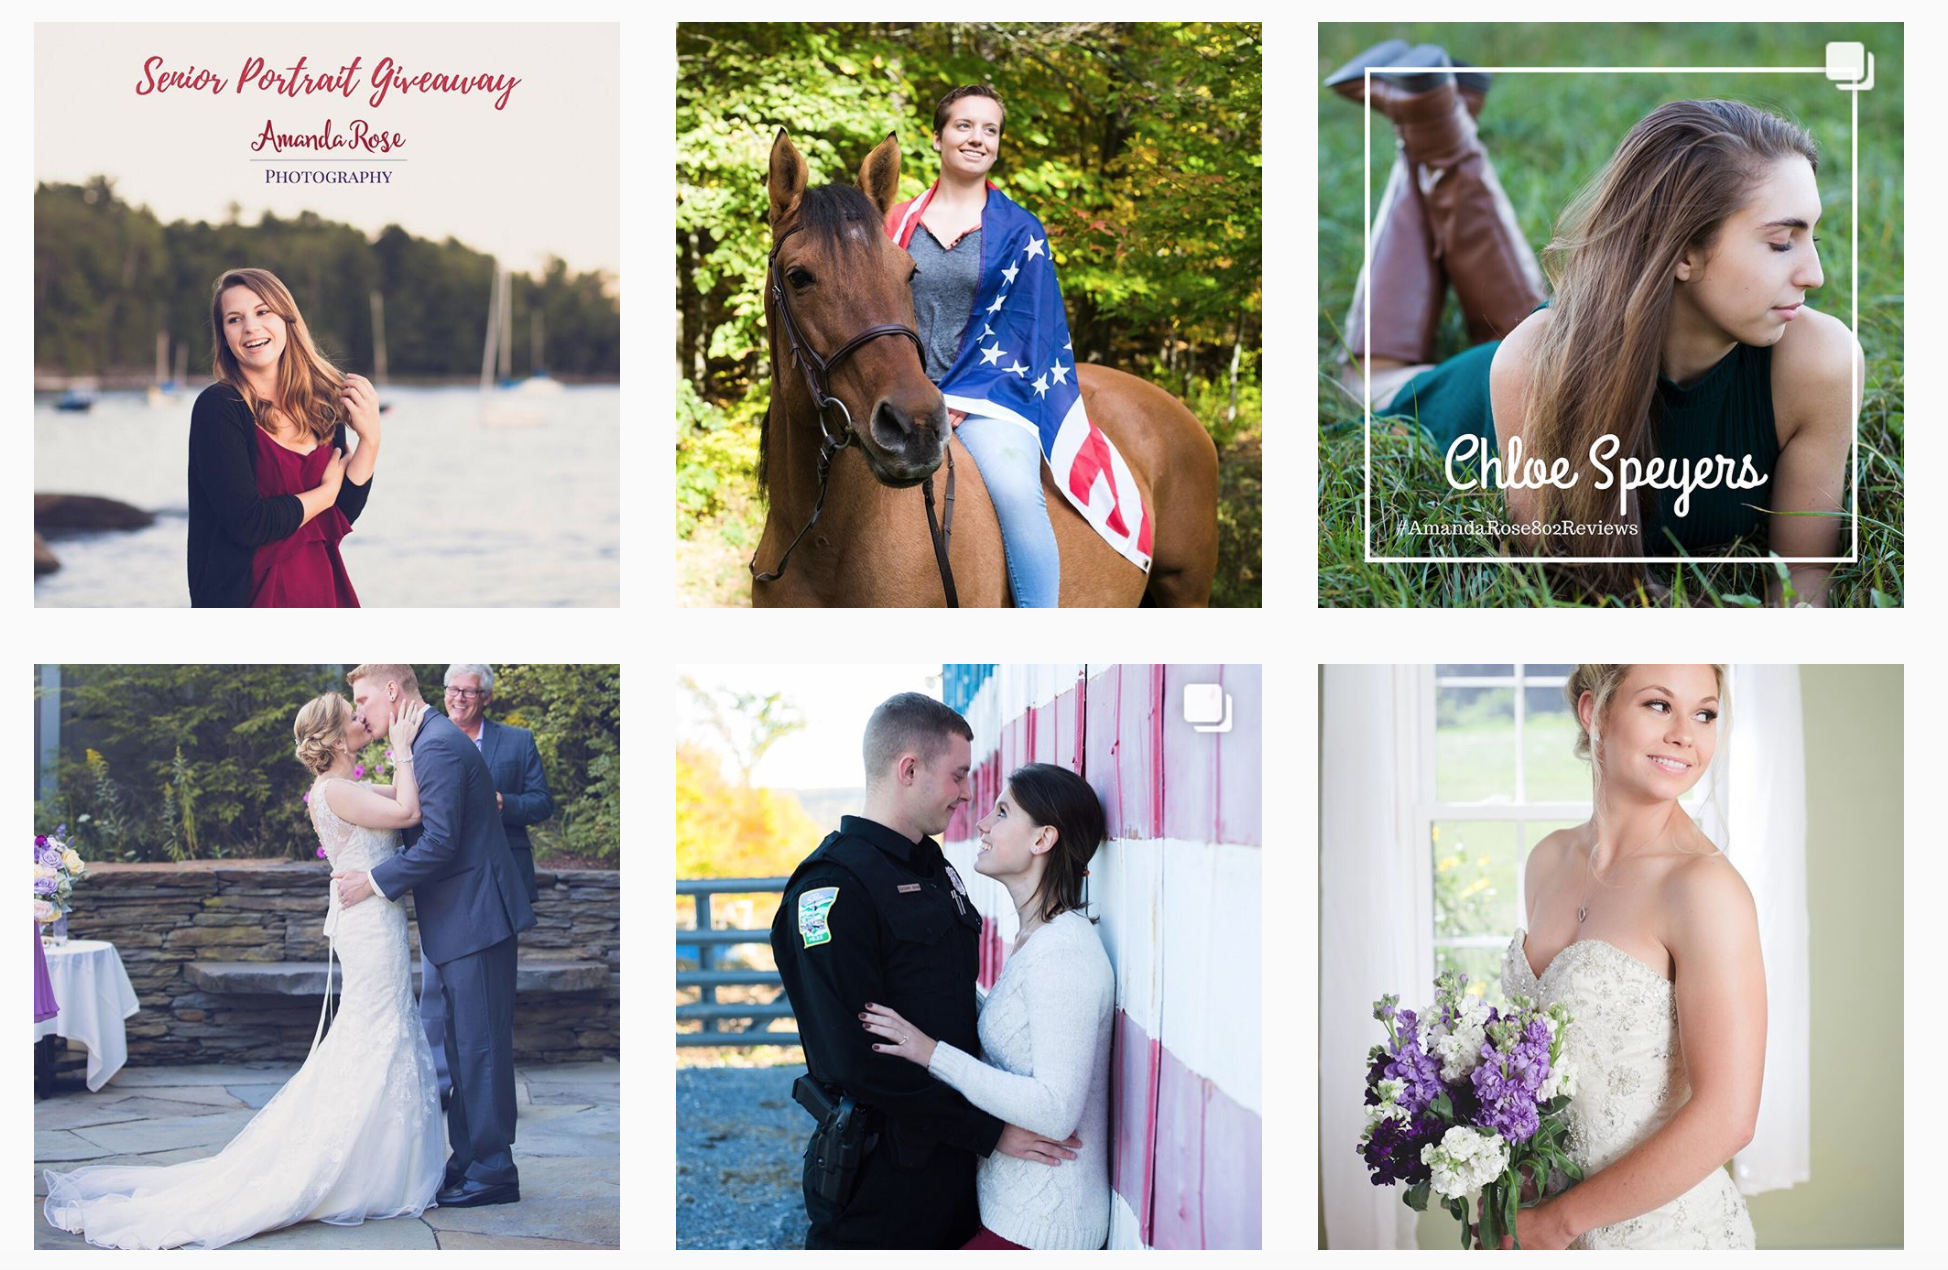 Amanda Rose Photography - Social Media Client